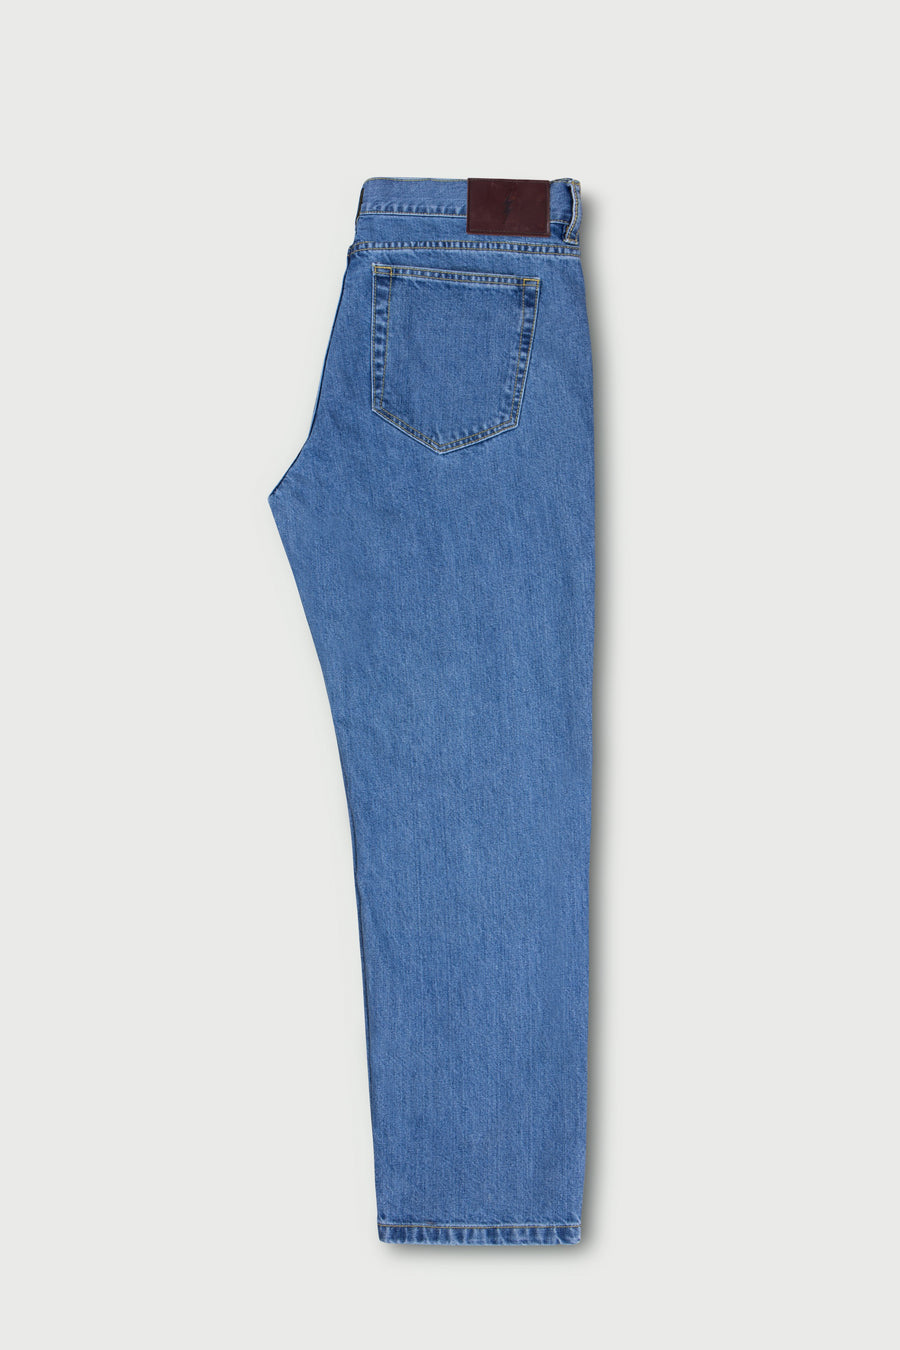 LUCKY 5-POCKET DENIM